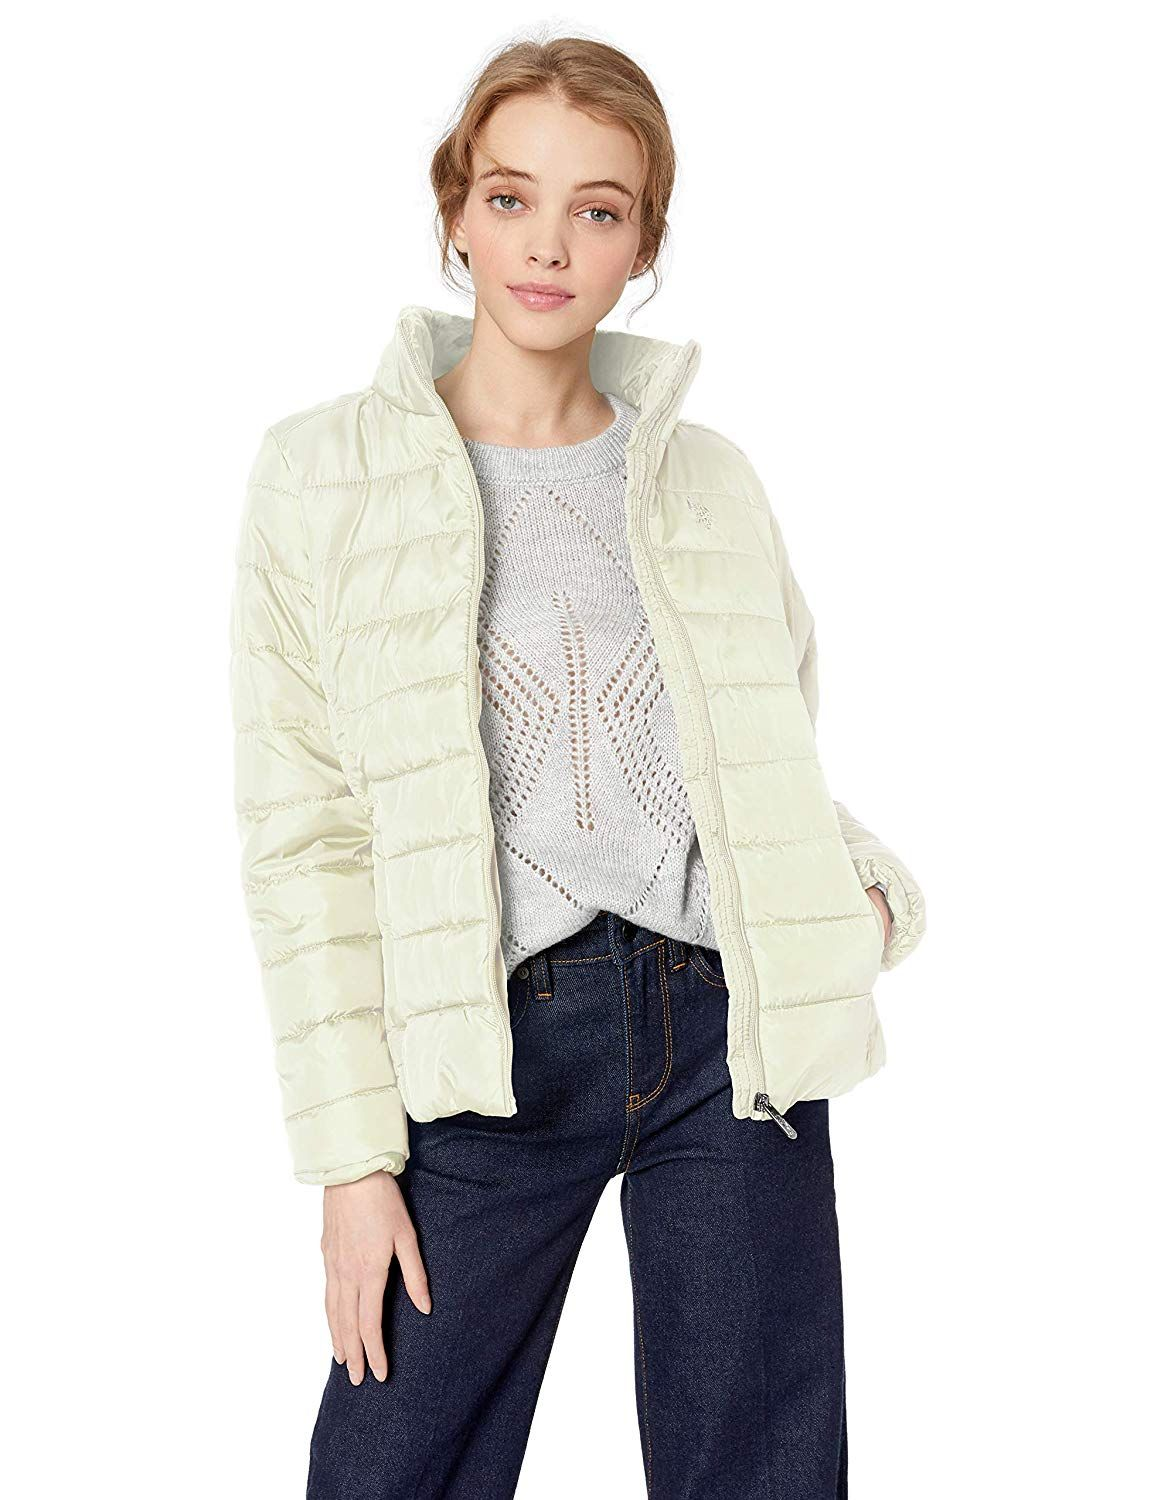 U S Polo Assn Women S Puffer Jacket You Can Find More Details By Visiting The Image Link This Is An Affiliat Puffer Jacket Women Jackets Juniors Jackets [ 1500 x 1154 Pixel ]